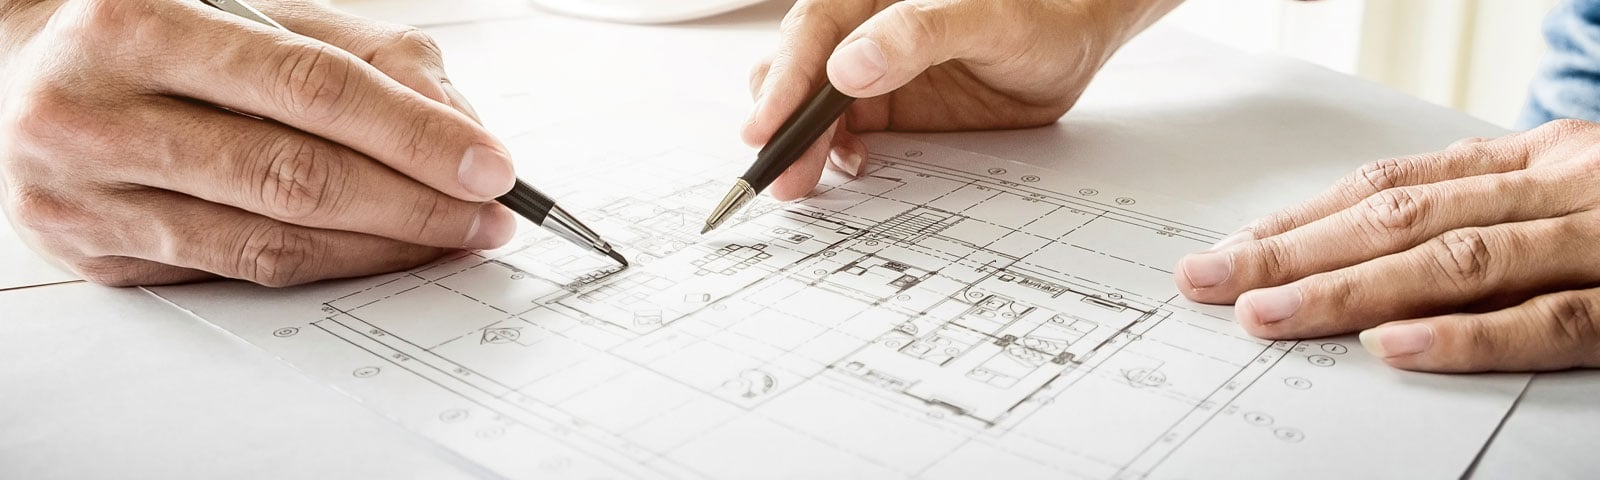 home improvement planning applications